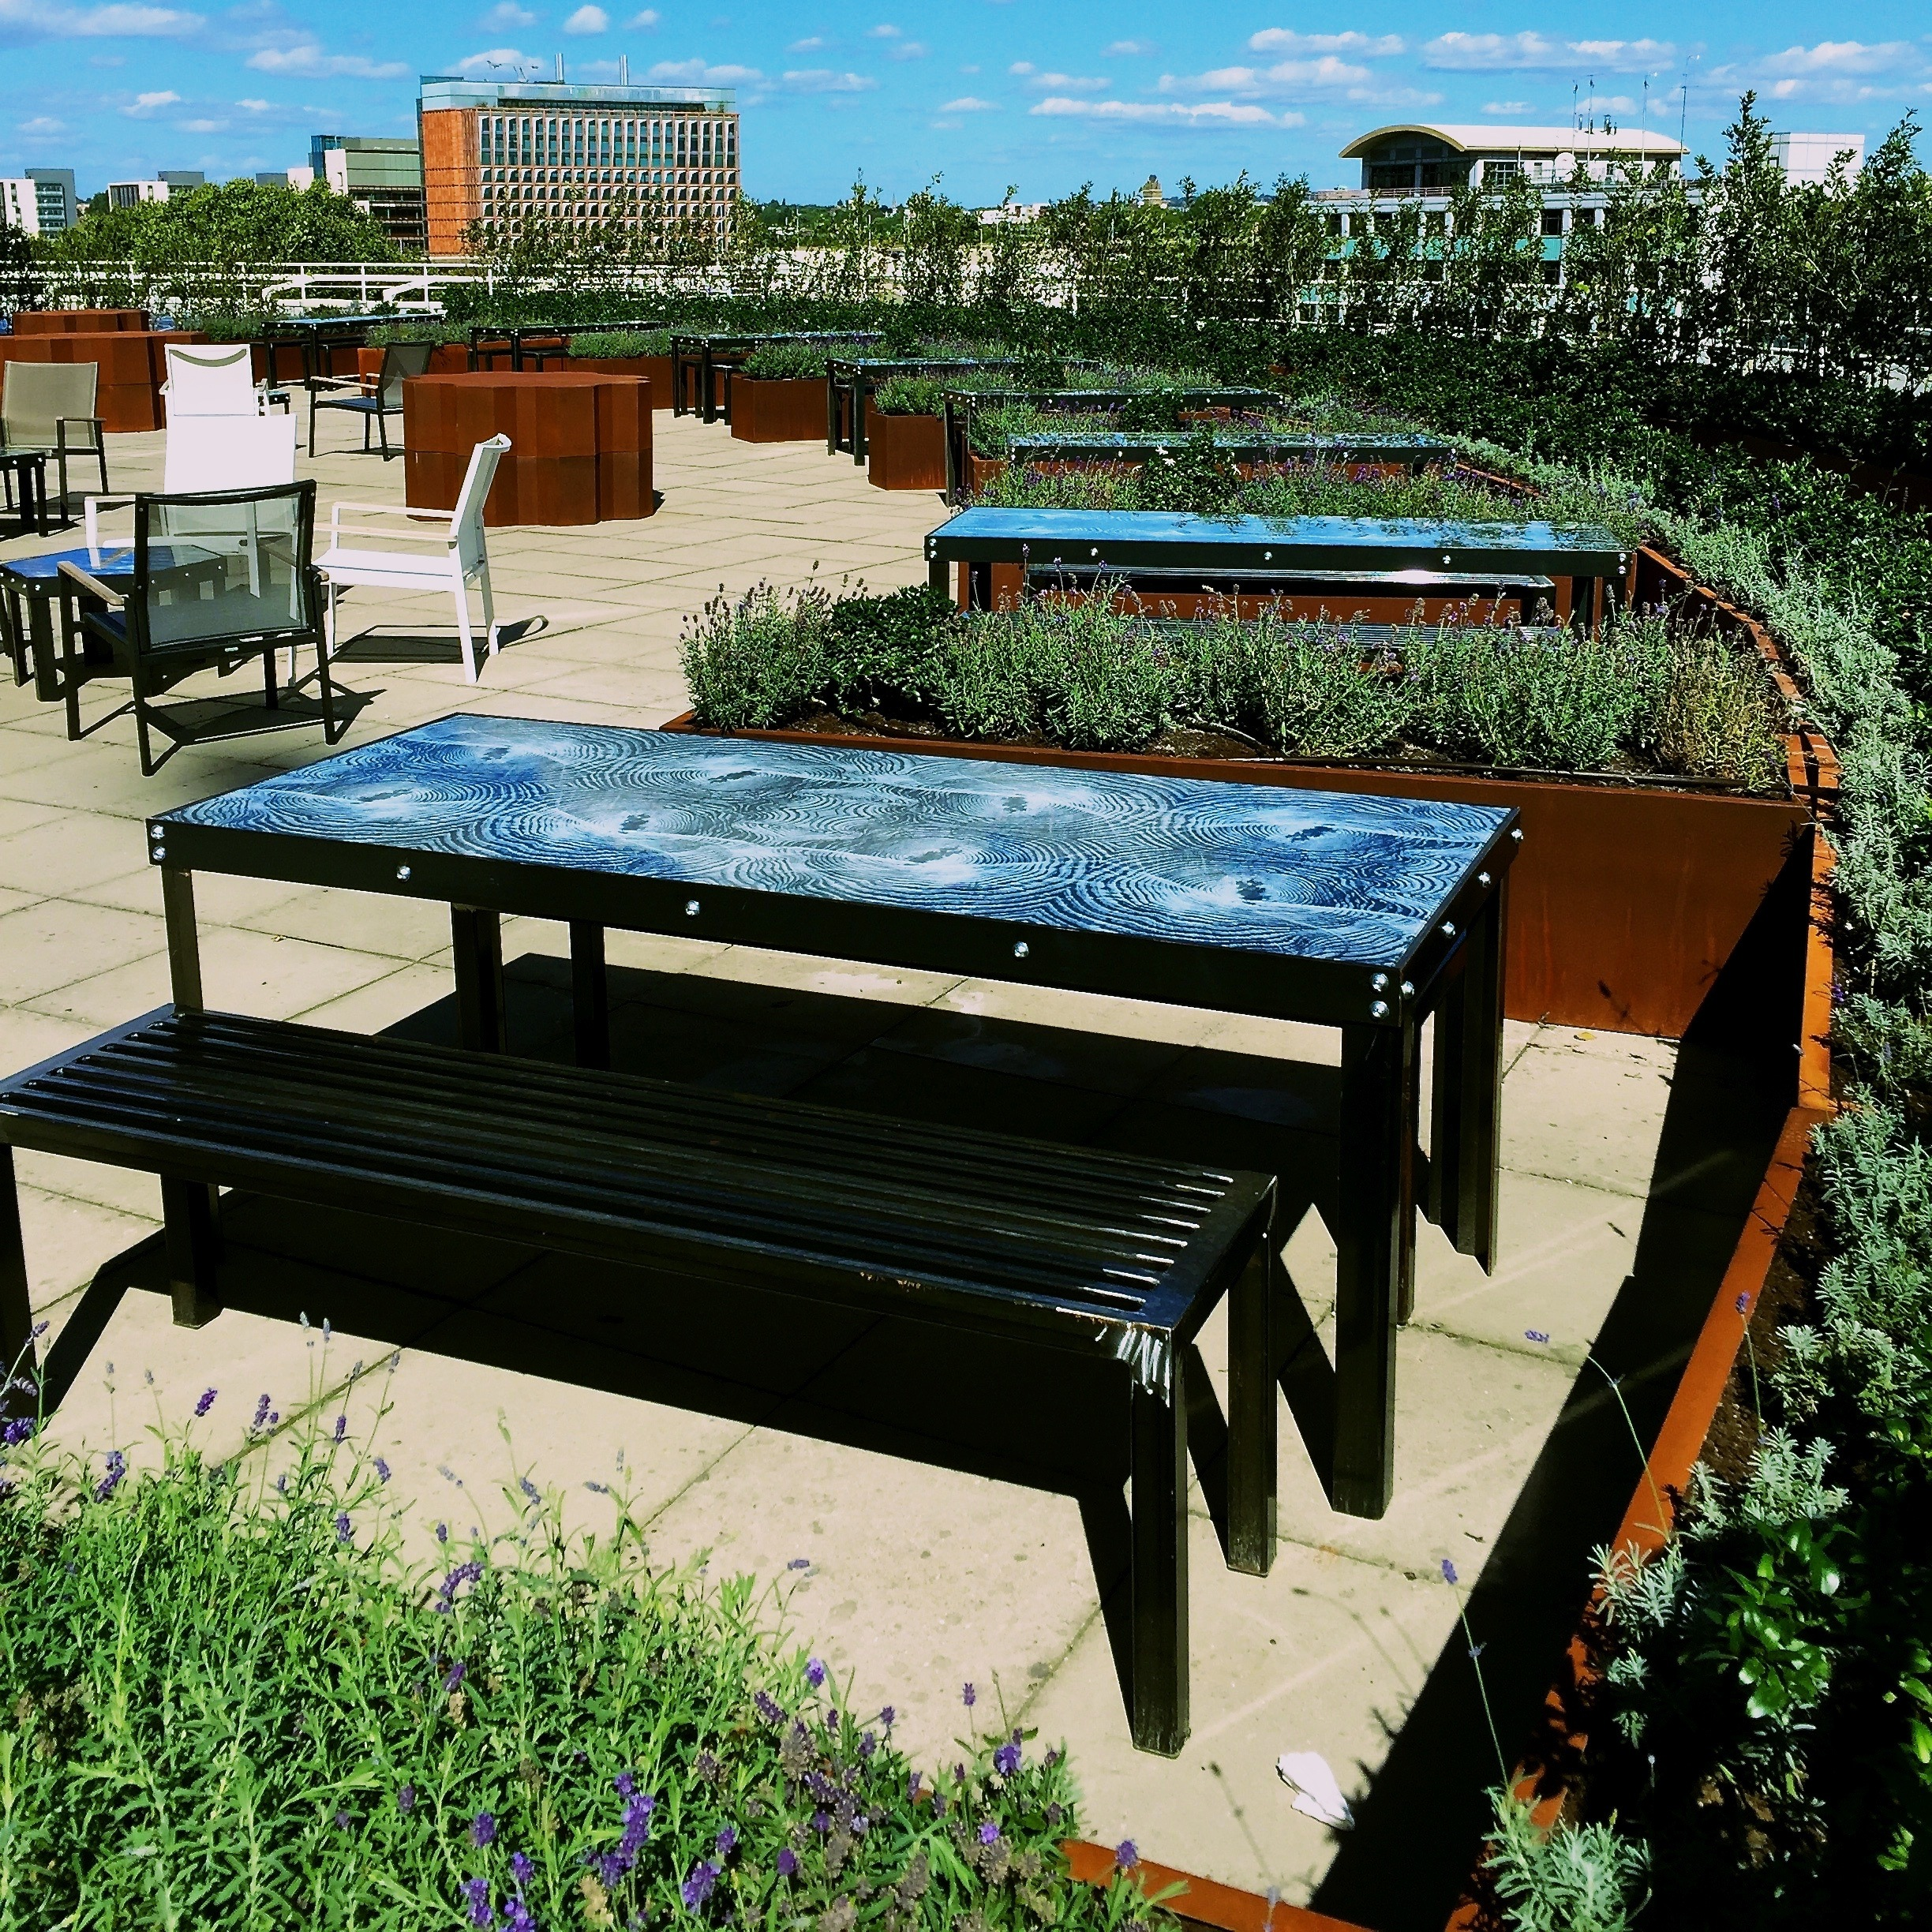 BBC Worldwide Roof Garden glass tables, metal benches, planters and lavender